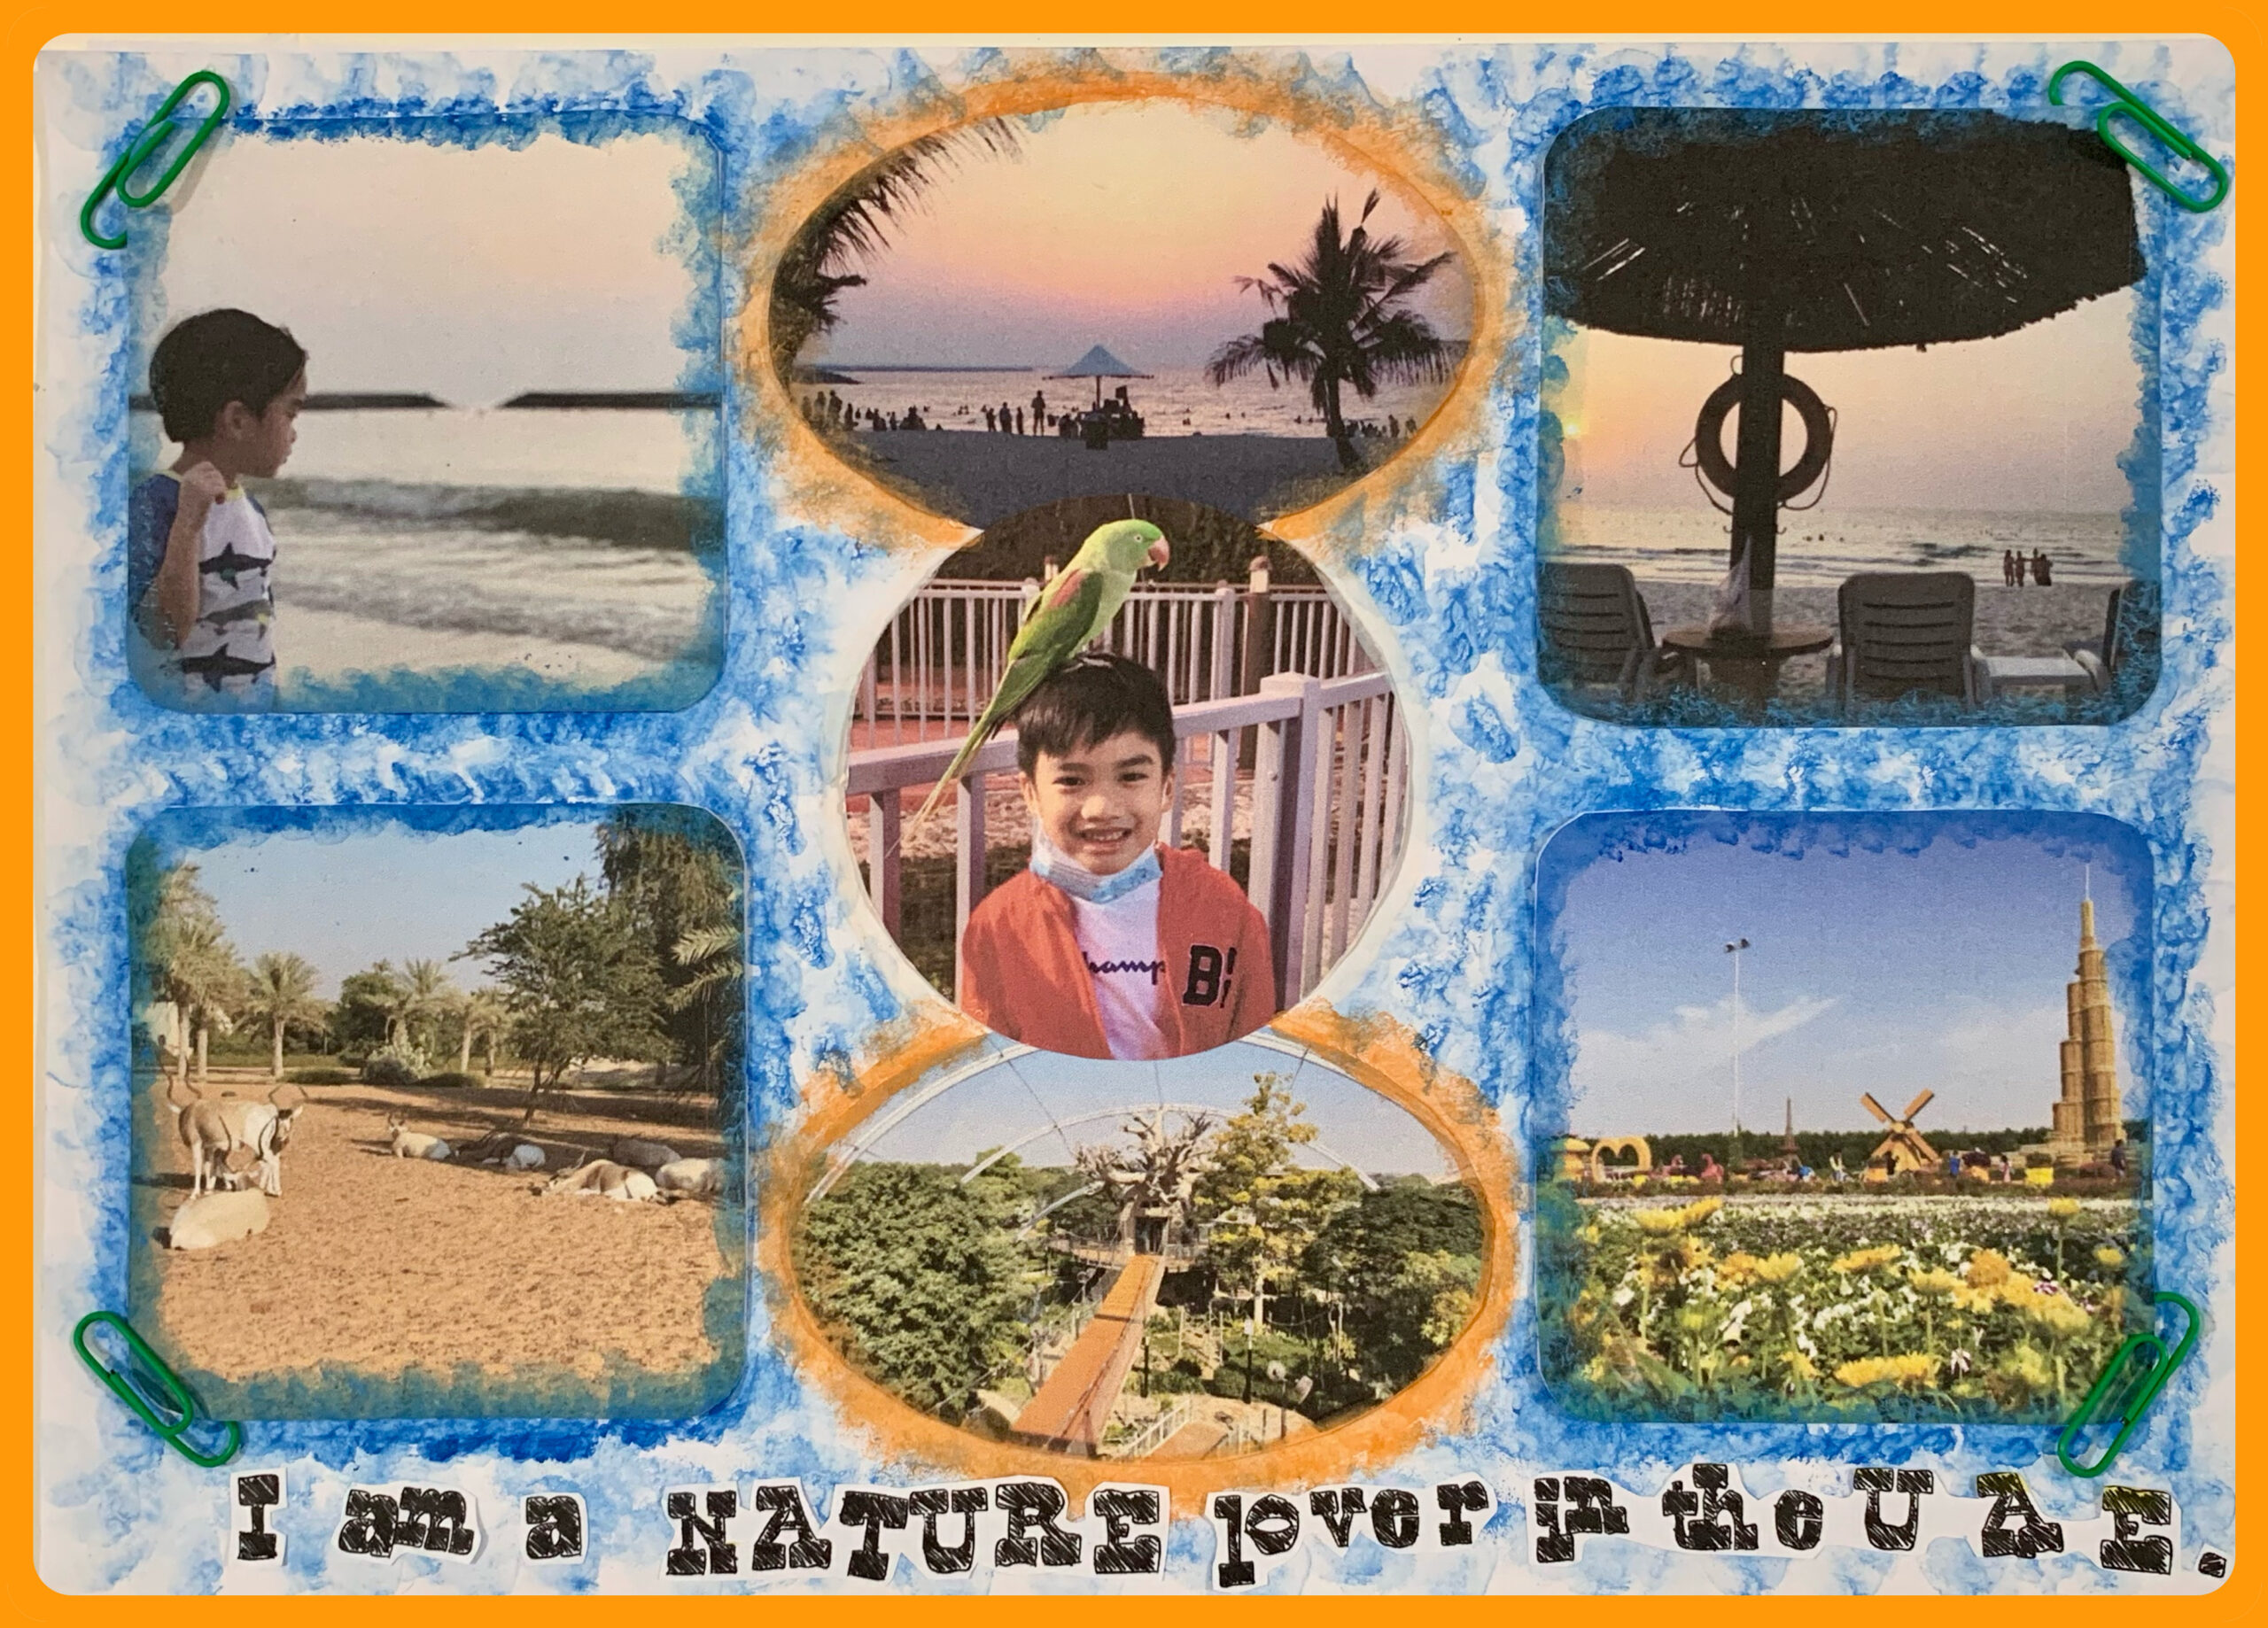 I am a Nature Lover by Cyrus Anschel A. Biares